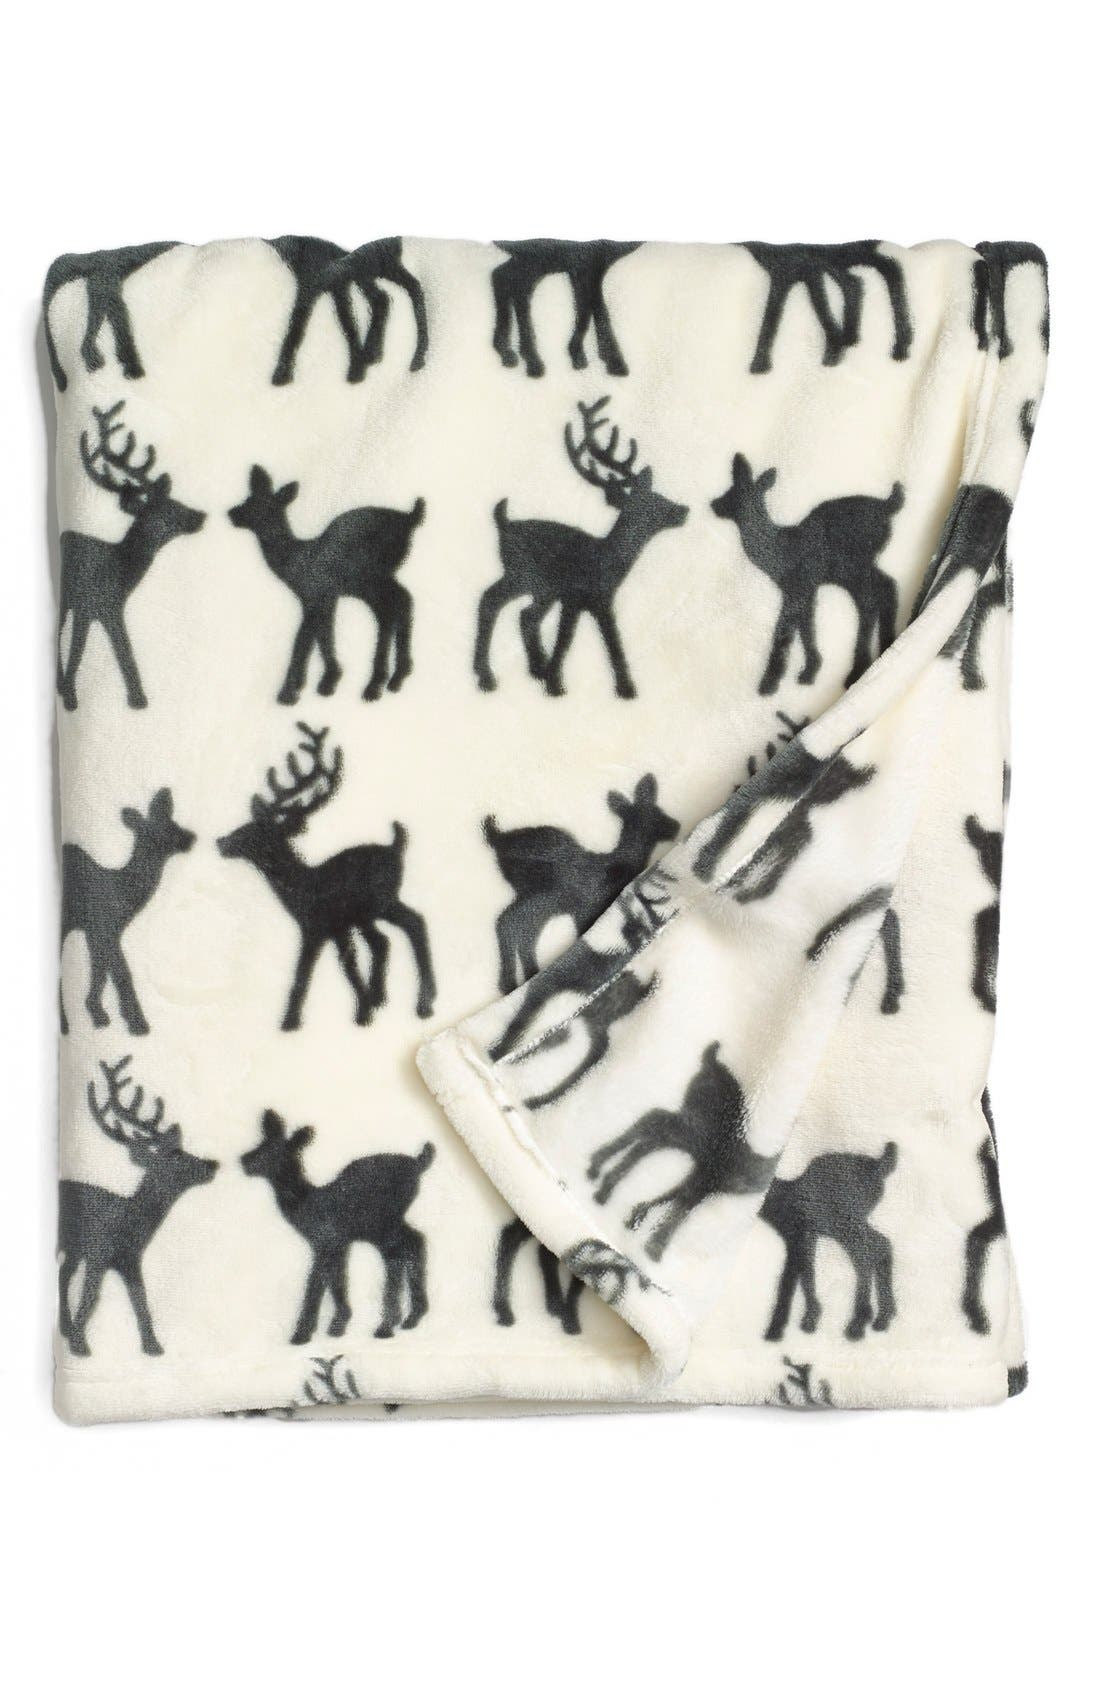 Alternate Image 1 Selected - Nordstrom at Home 'Deer Date' Plush Throw